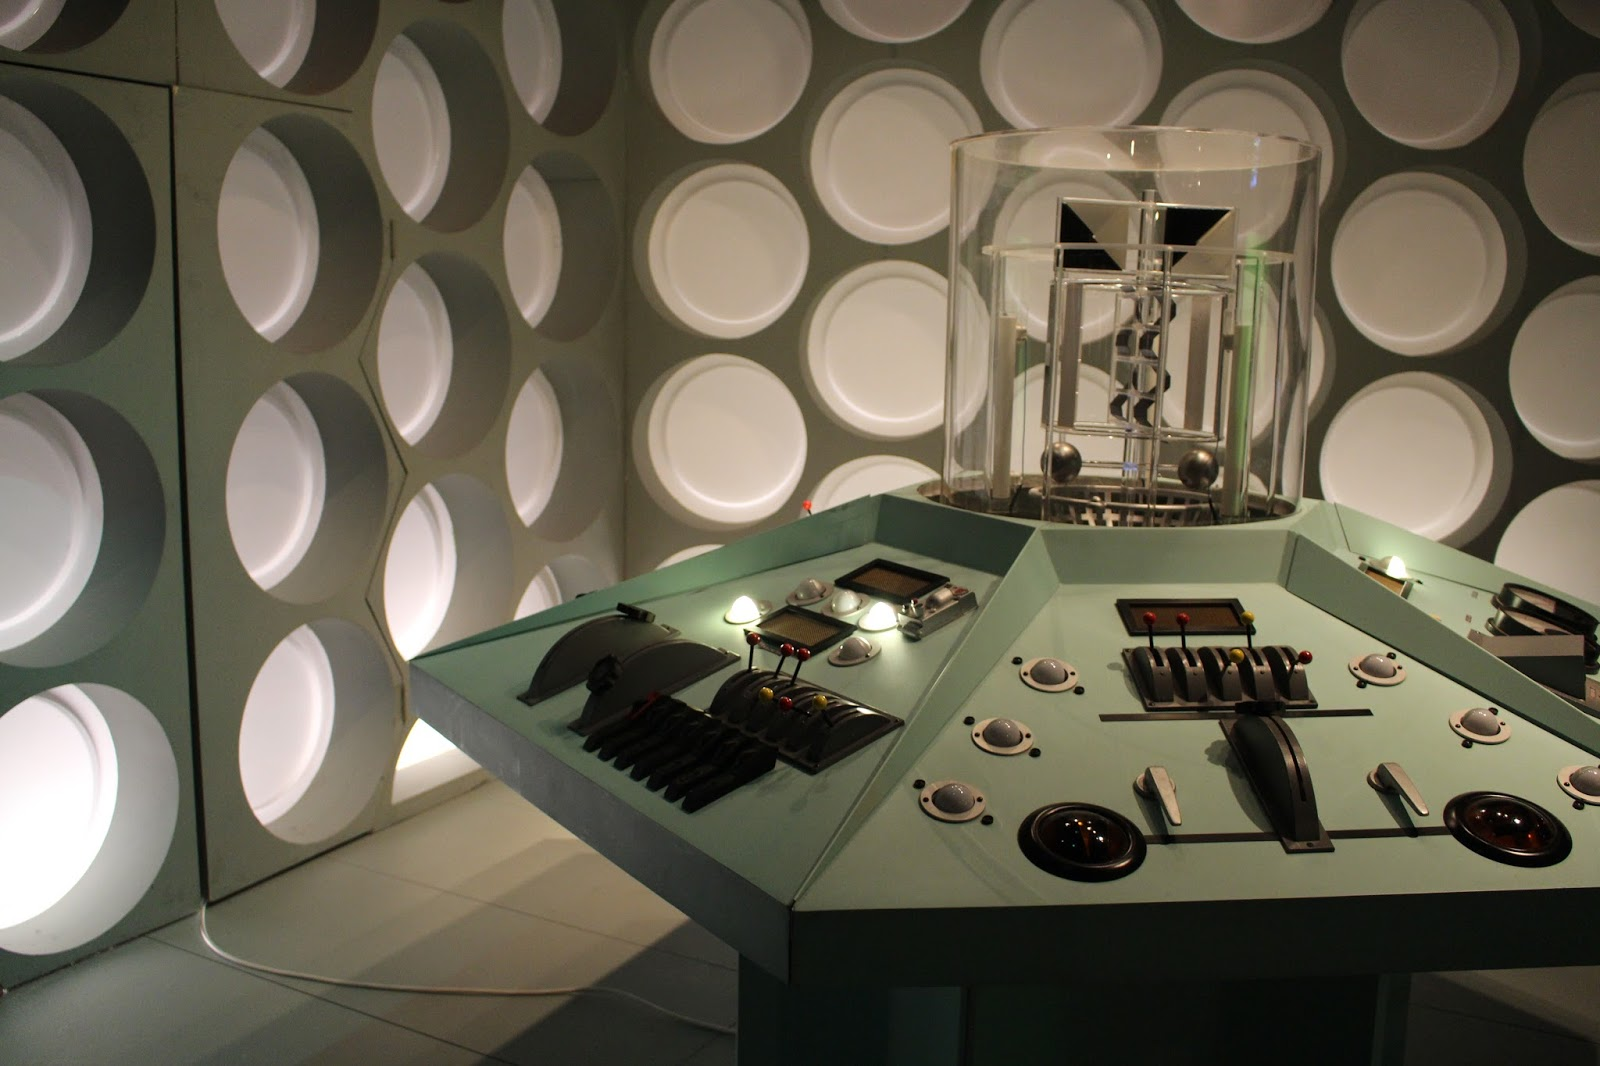 Replica of the First Doctor's TARDIS console